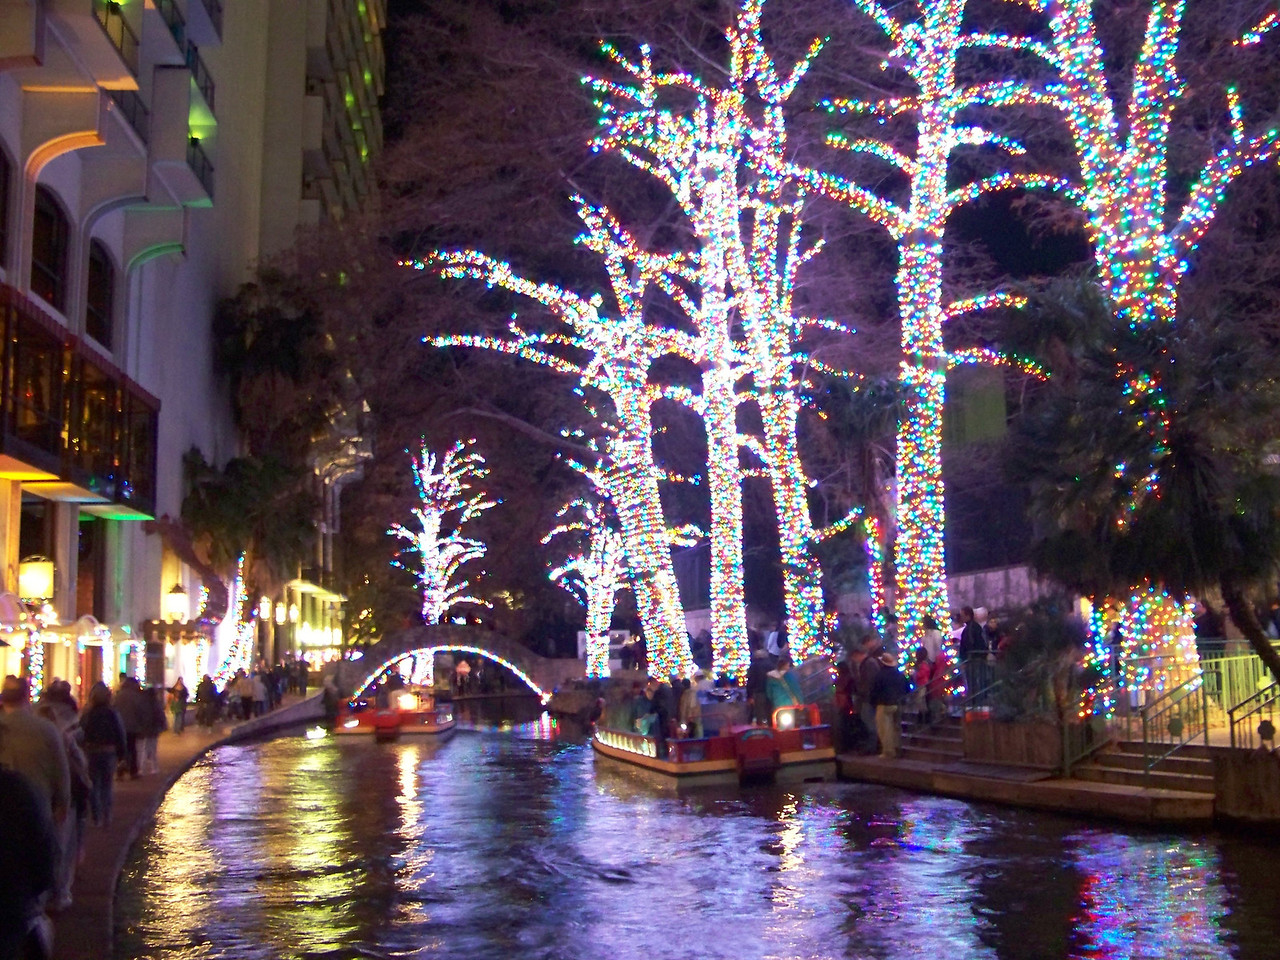 "San Antonio's River Walk is always decorated at Christmas.  This is the first year they used LED lights, which were wrapped around the tree trunks.  In the past, long strings of the big C9 lights were attached to the tops of the trees and hung straight down over the water (<b><a target=""_new"" href=""http://www.flickr.com/photos/jmtimages/3123833803/"">here's a photo of what that looked like</a></b>).  There was a lively debate among the locals about this change!"